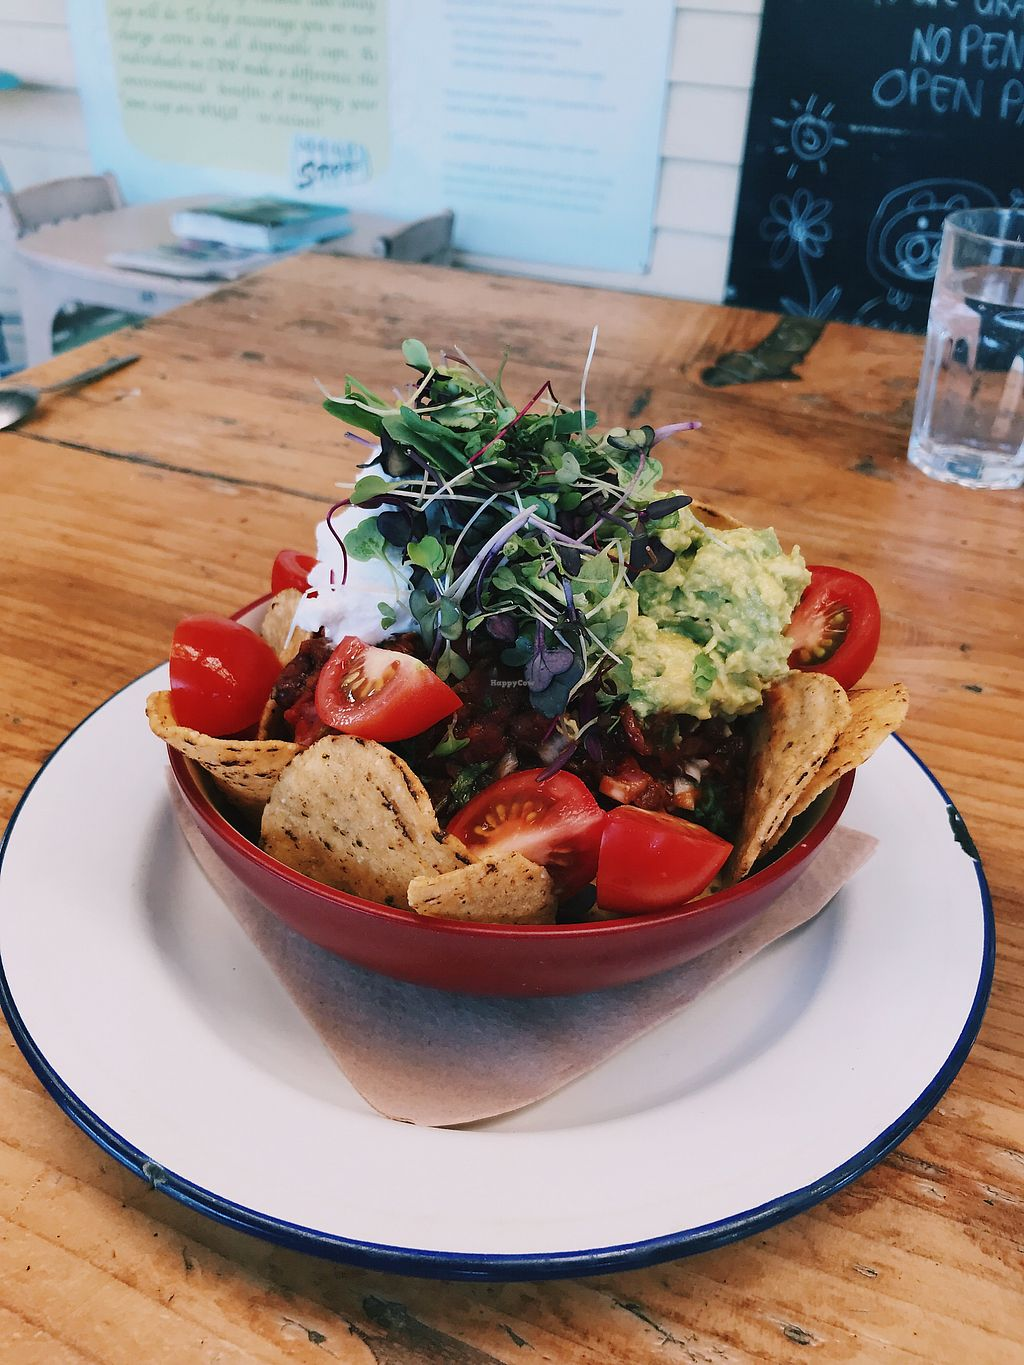 "Photo of Okere Falls Store  by <a href=""/members/profile/JadeBuitendag"">JadeBuitendag</a> <br/>Vegan nachos!  <br/> December 21, 2017  - <a href='/contact/abuse/image/104062/337717'>Report</a>"